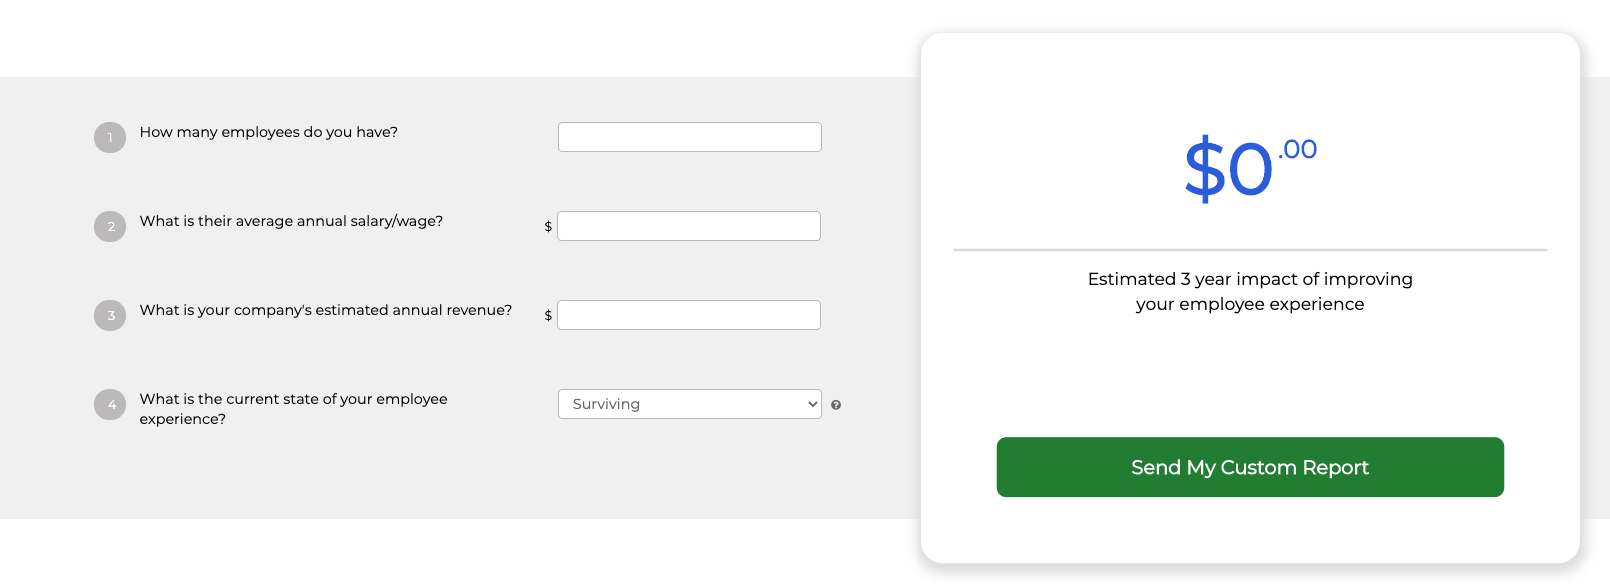 employee experience impact roi calculator entry fields